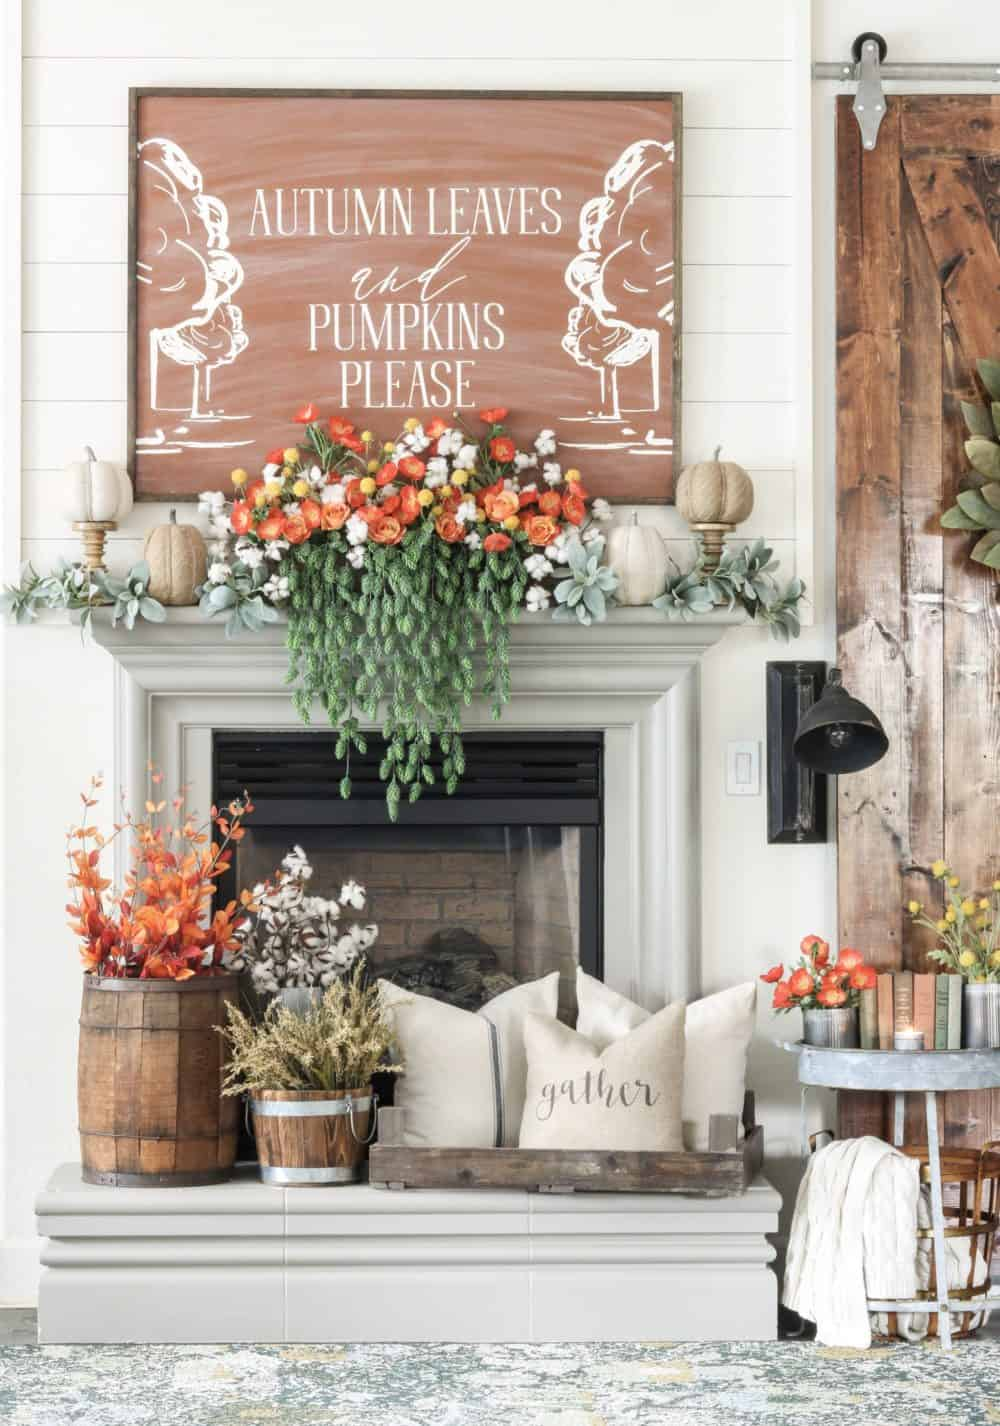 This sign makes this fall mantel! It is amazing!